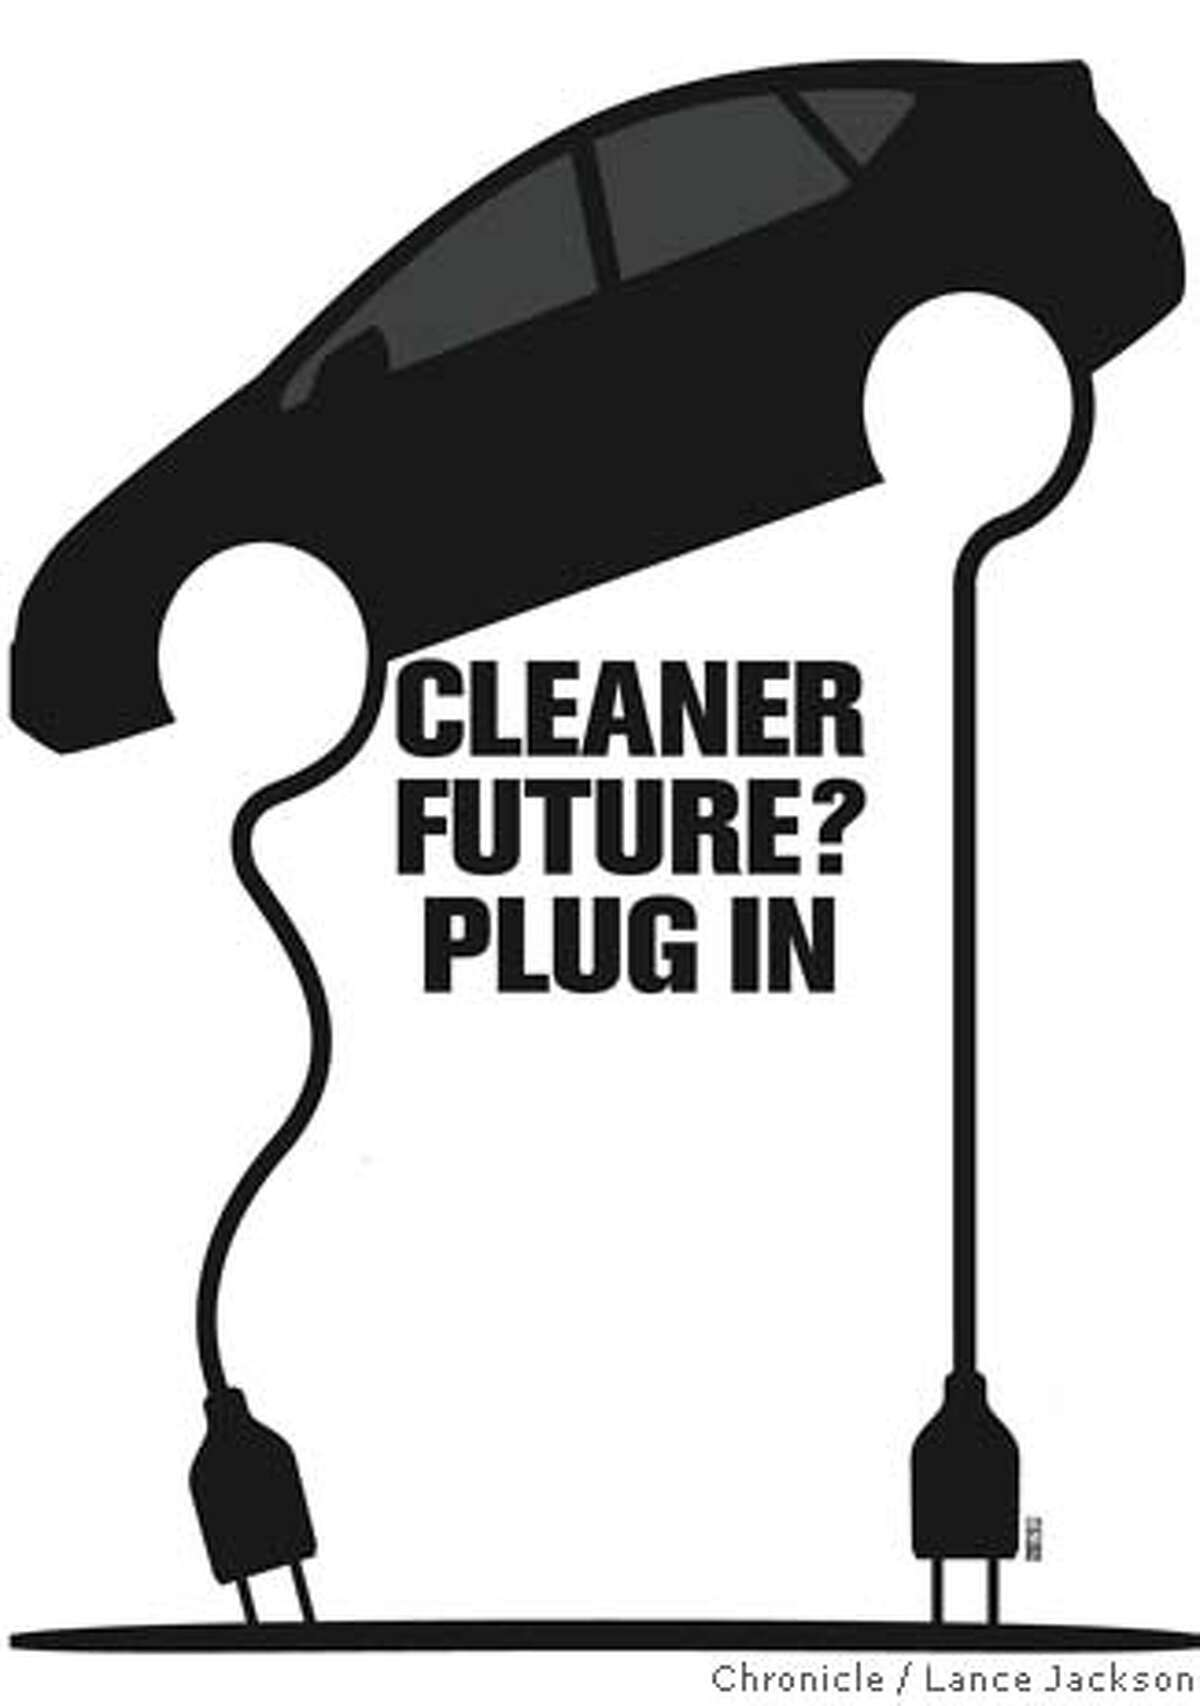 Cleaner Future? Plug In. Chronicle graphic by Lance Jackson